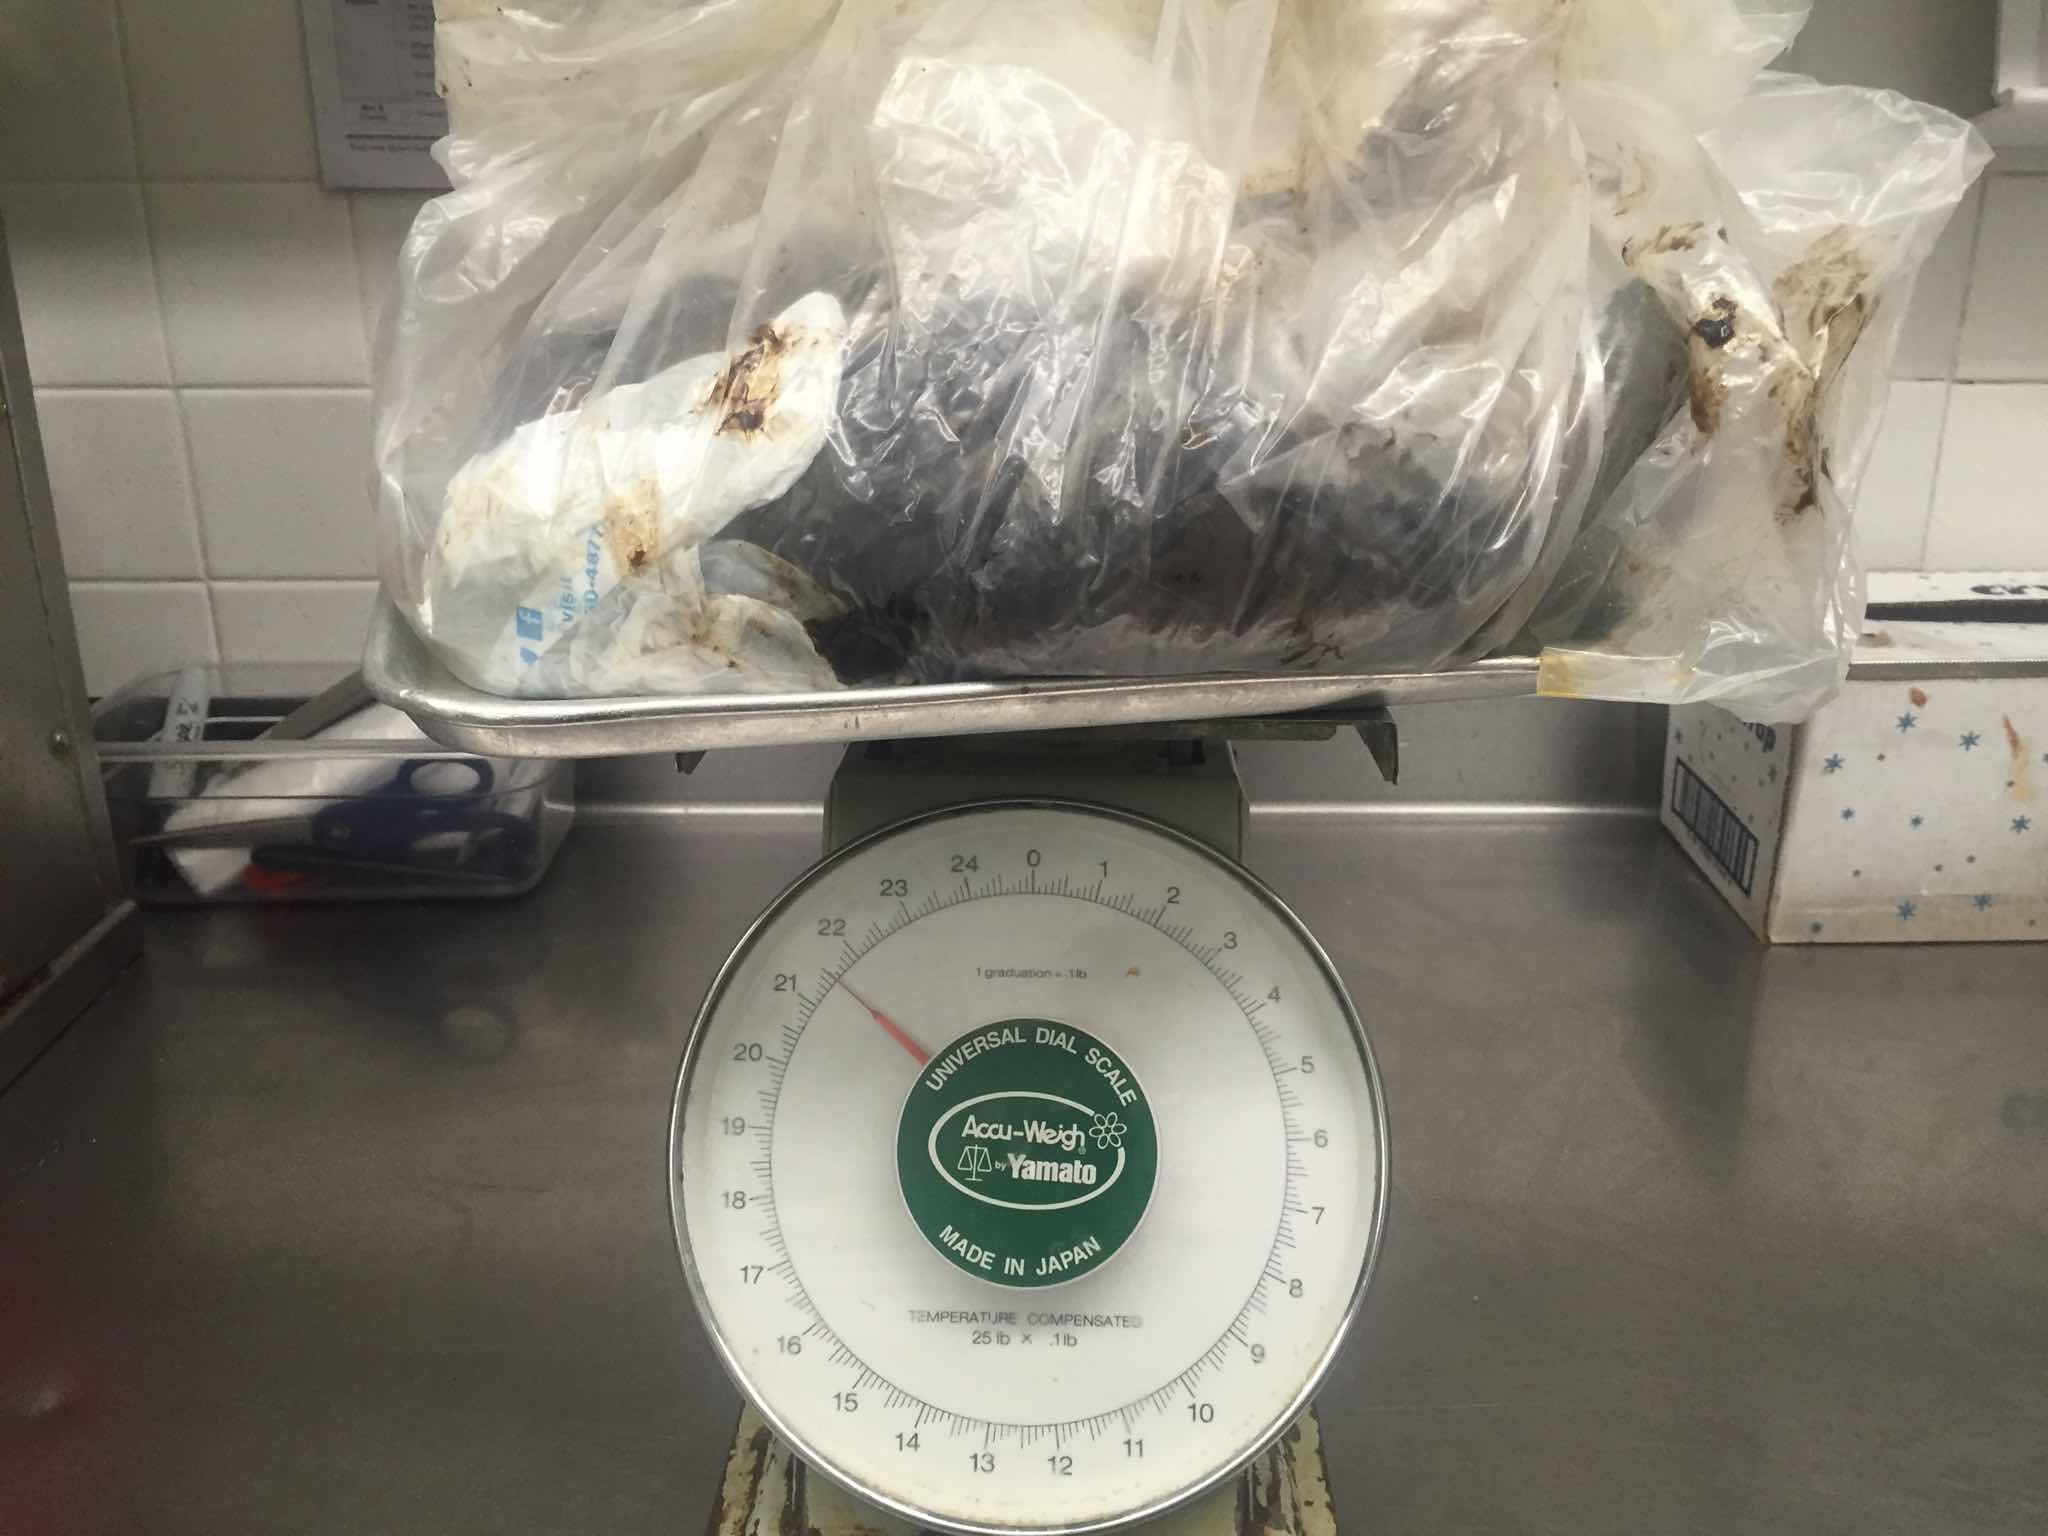 22 lb. Removal from a hood